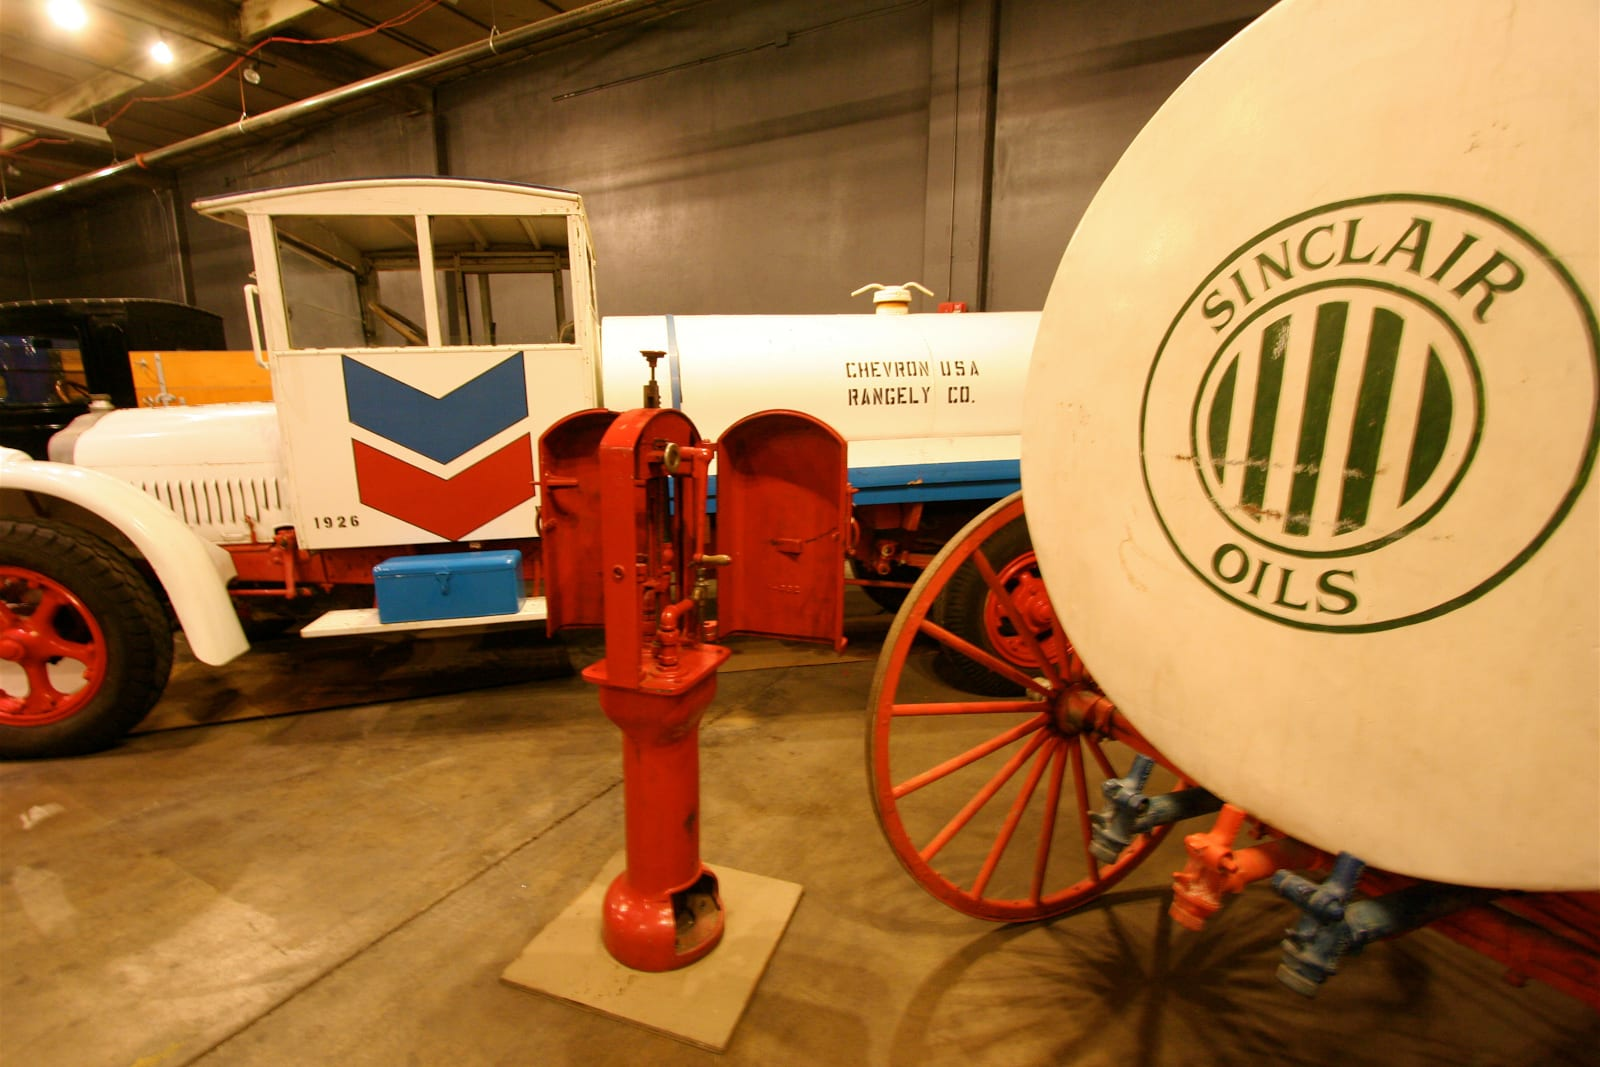 Forney Museum of Transportation Chevron Gasoline Truck